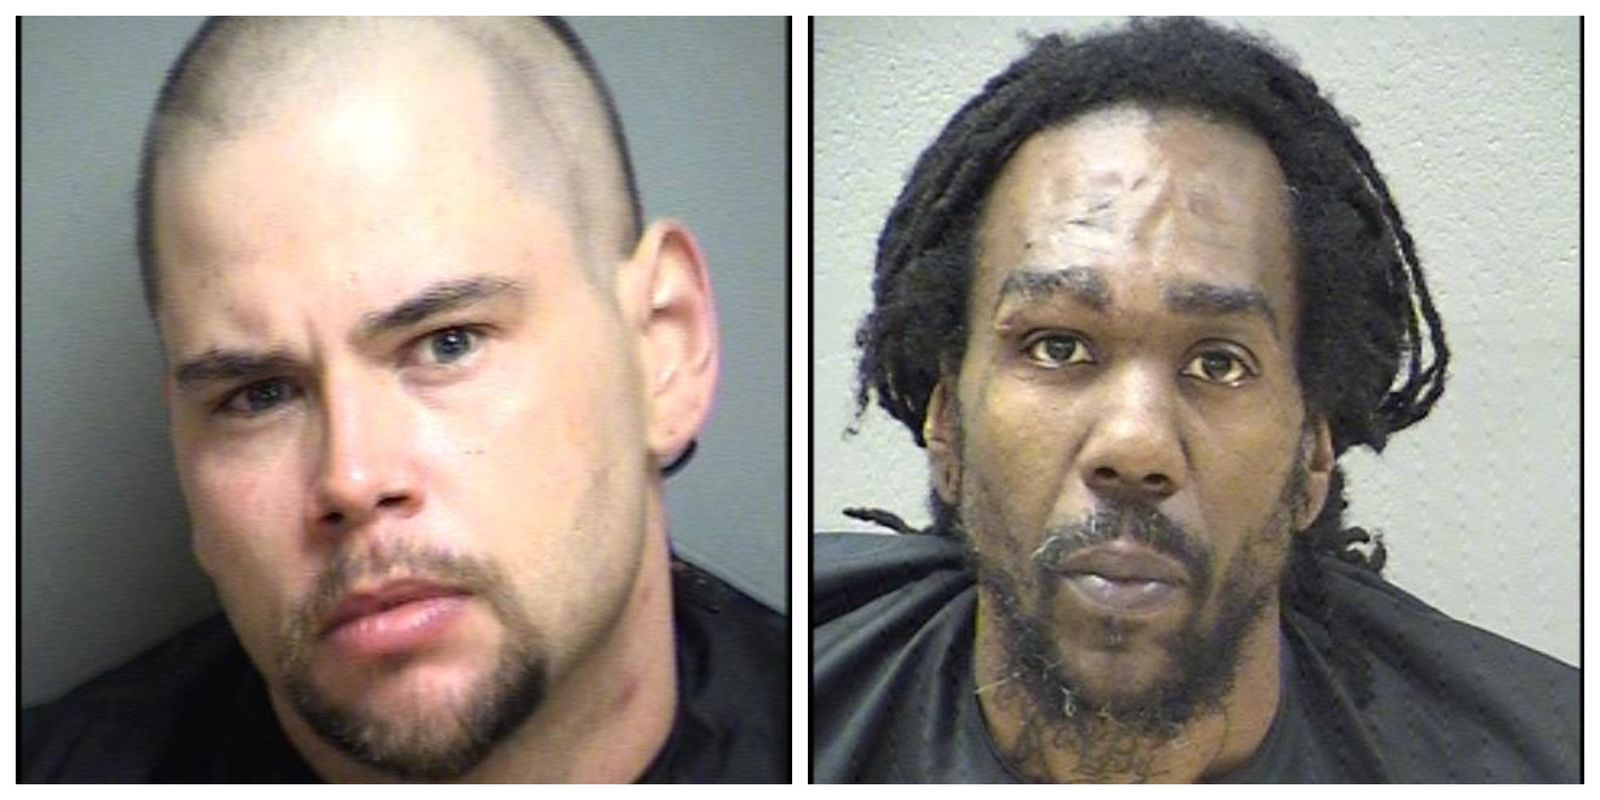 Larry Howard Grishaw Jr, 32, of Altavista and Ernest Hampton Turner, 43, of Madison Heights are wanted on outstanding charges related to the distribution of controlled substances from Operation Cloudburst (Amherst Co. Sheriff's Office)